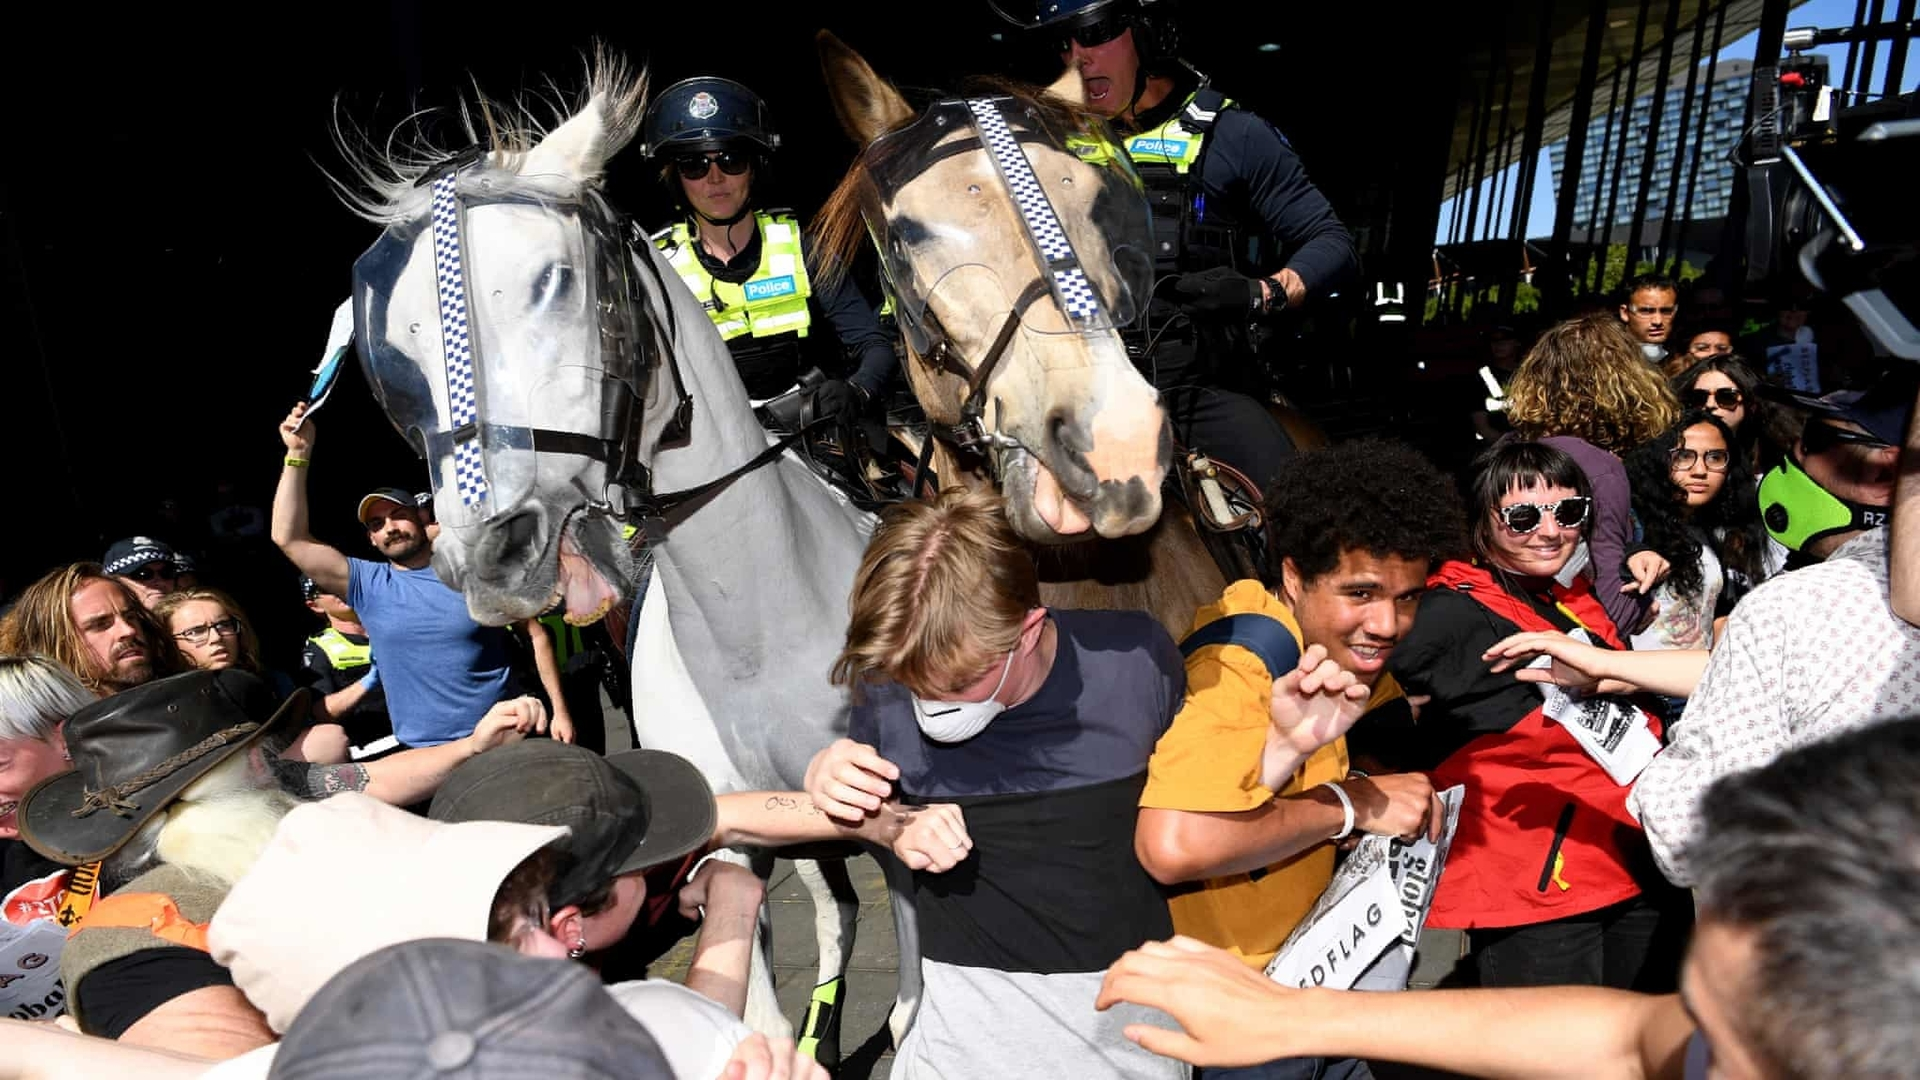 The police charged at the protesters with horses and attacked them with pepper spray.